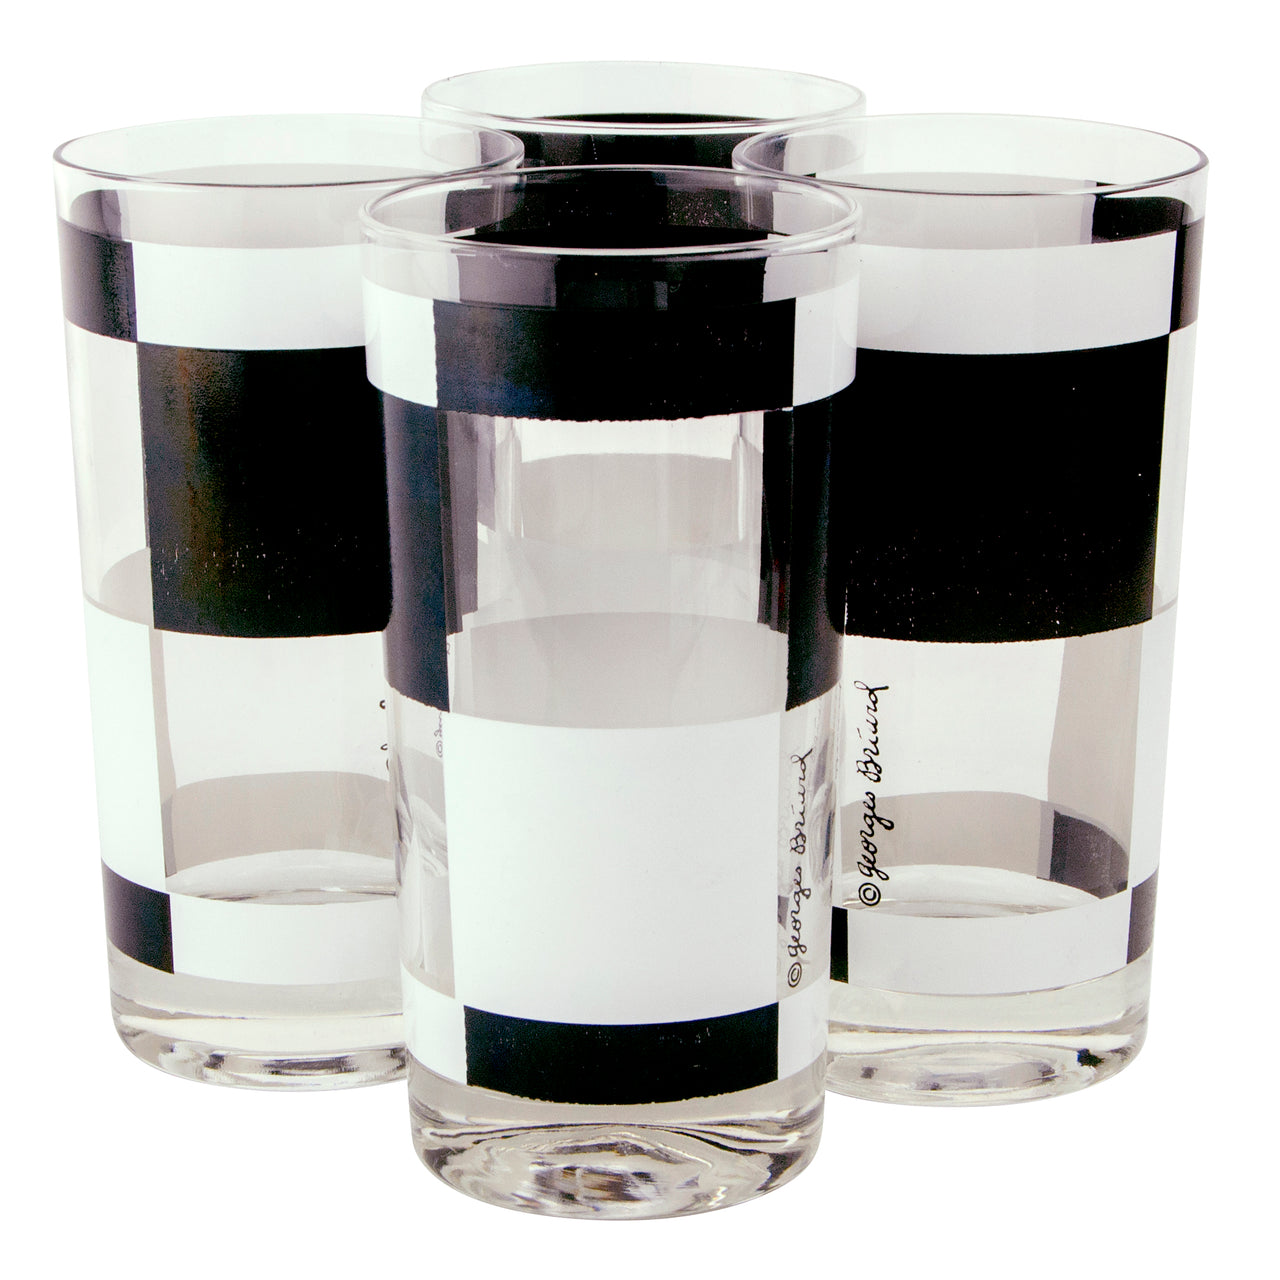 Georges Briard Black & White Collins Glasses